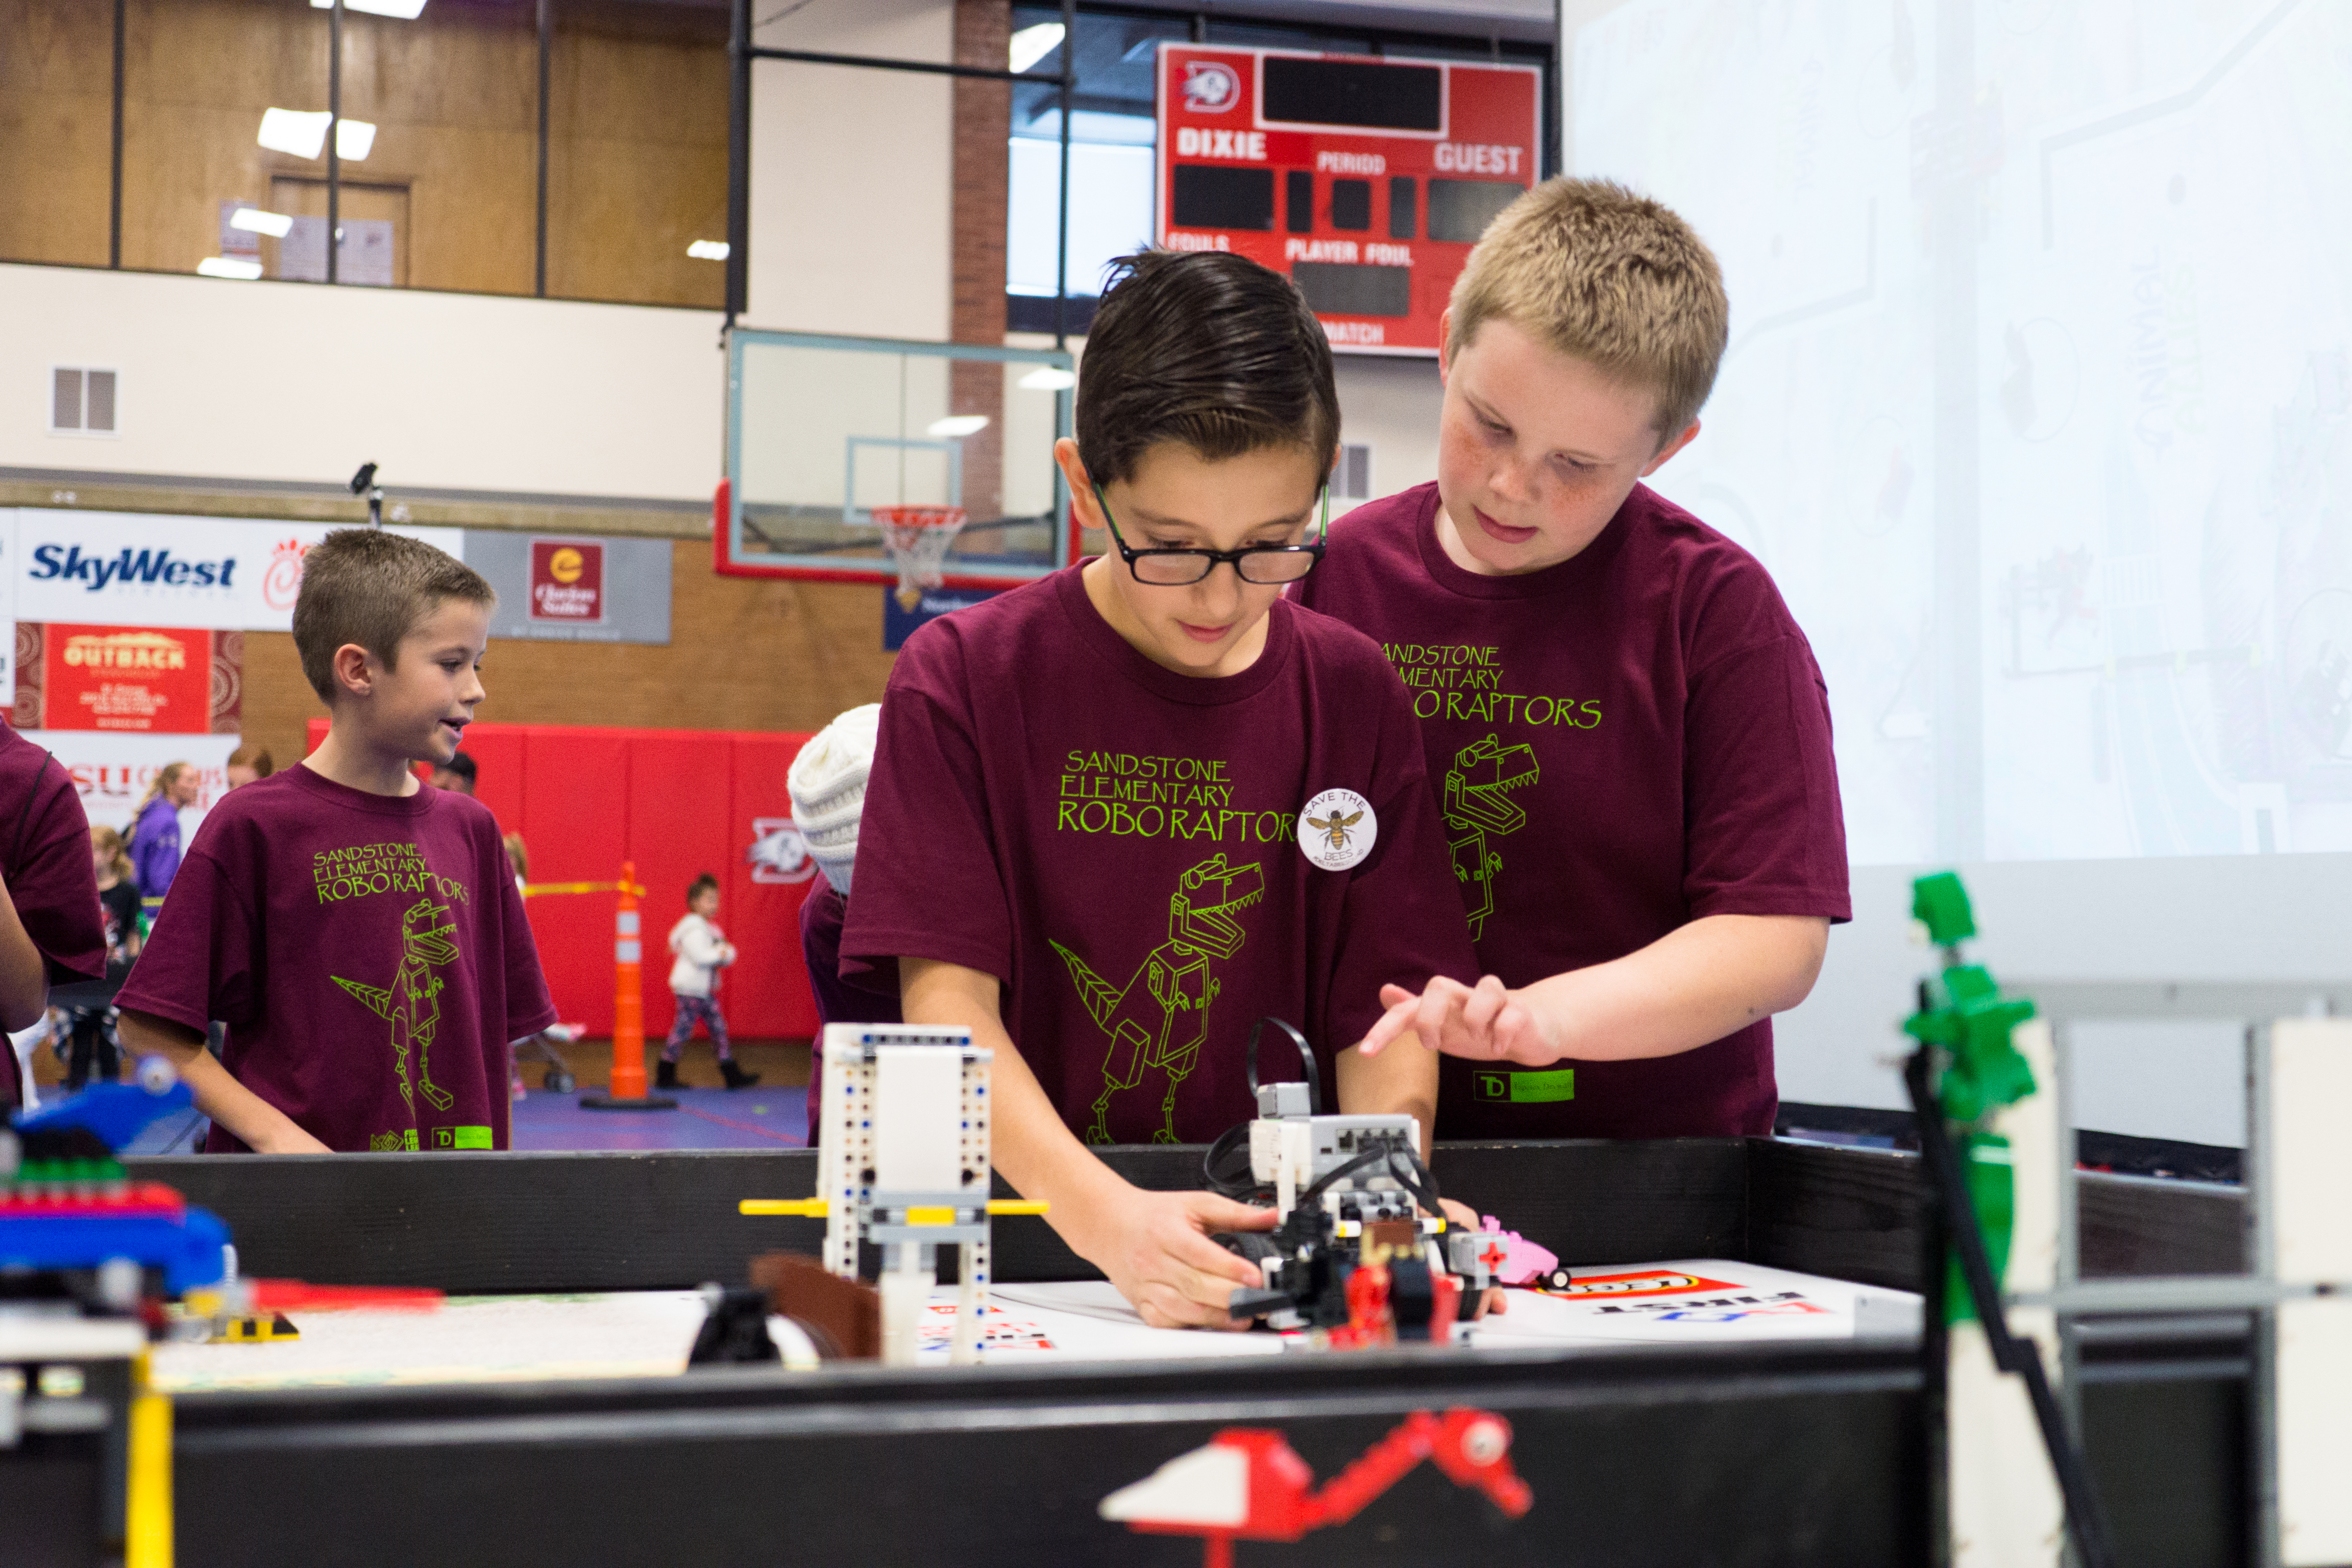 Sandstone Elementary's RoboRaptors compete at the First Lego League competition, Dixie State University, St. George, Utah, Jan. 7, 2017 | Photo by and courtesy of Sterling Jones, St. George News